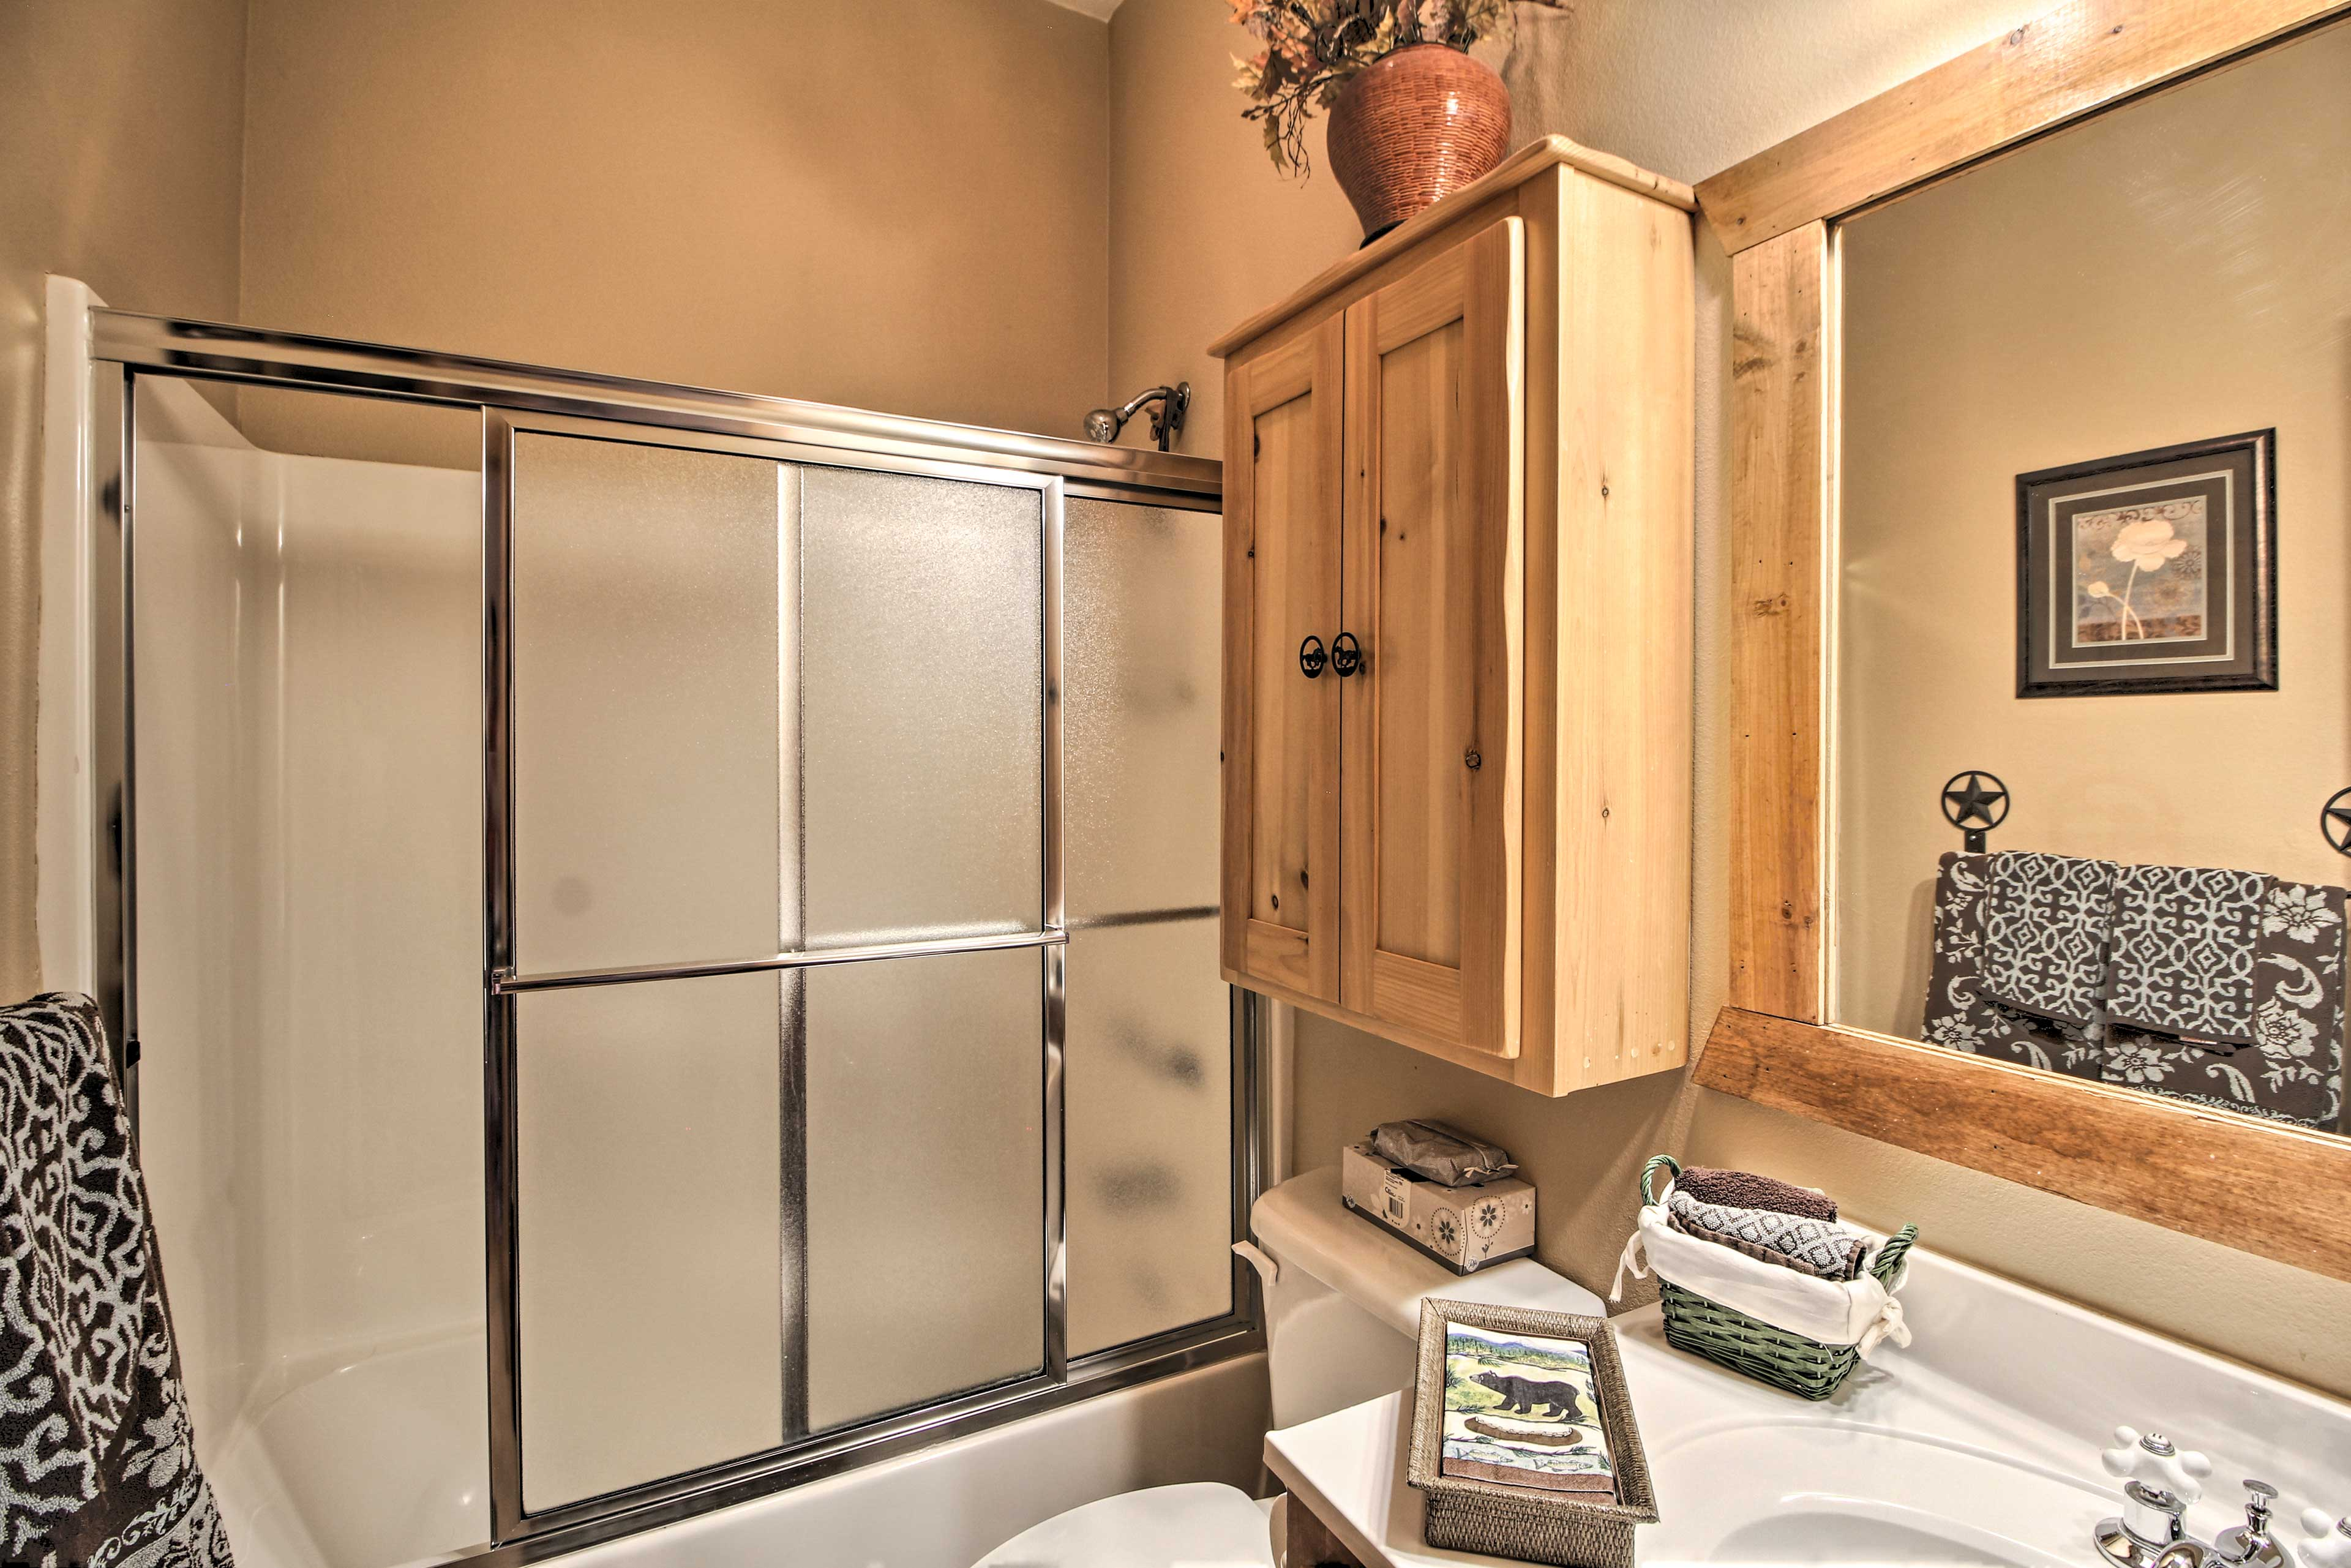 Rinse off in the shower/tub combo with sliding frosty doors.